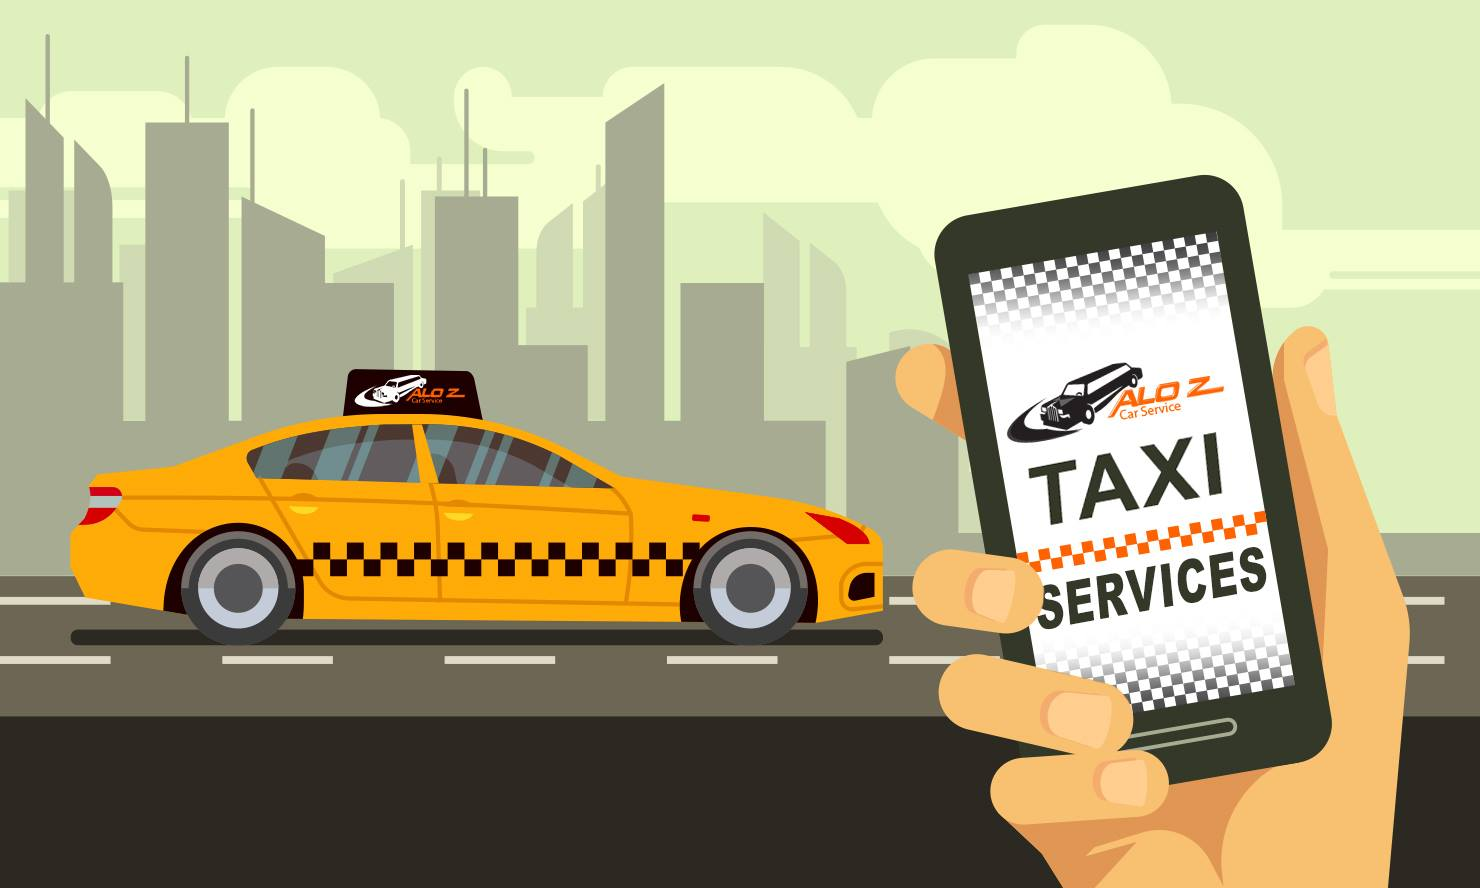 Book Airport Taxi Limo Service (732-742-2252) or Local Taxi Limo Service New Jersey